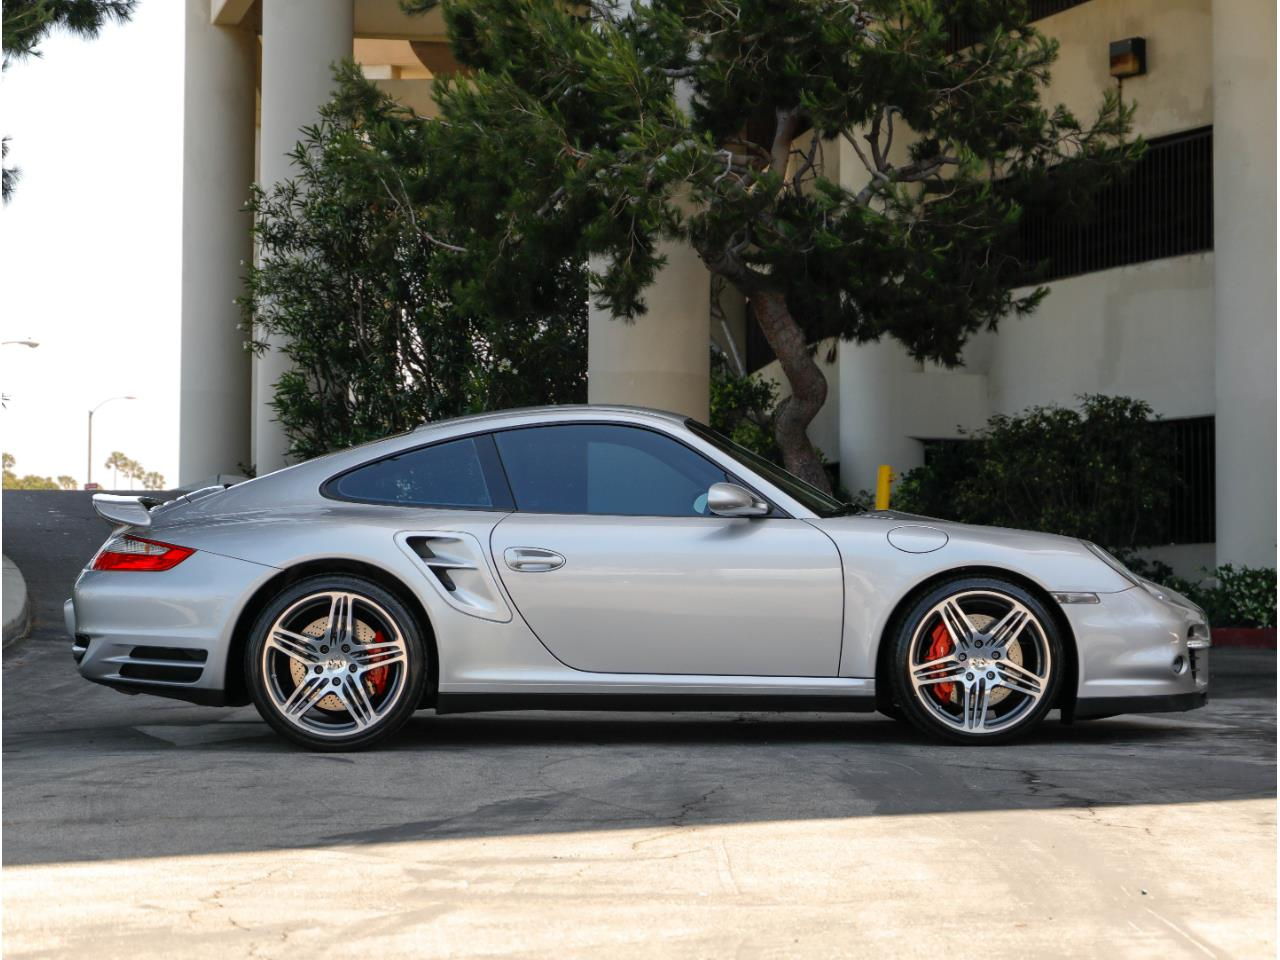 Large Picture of '07 911 Turbo - $71,500.00 Offered by Chequered Flag International - QG8Z